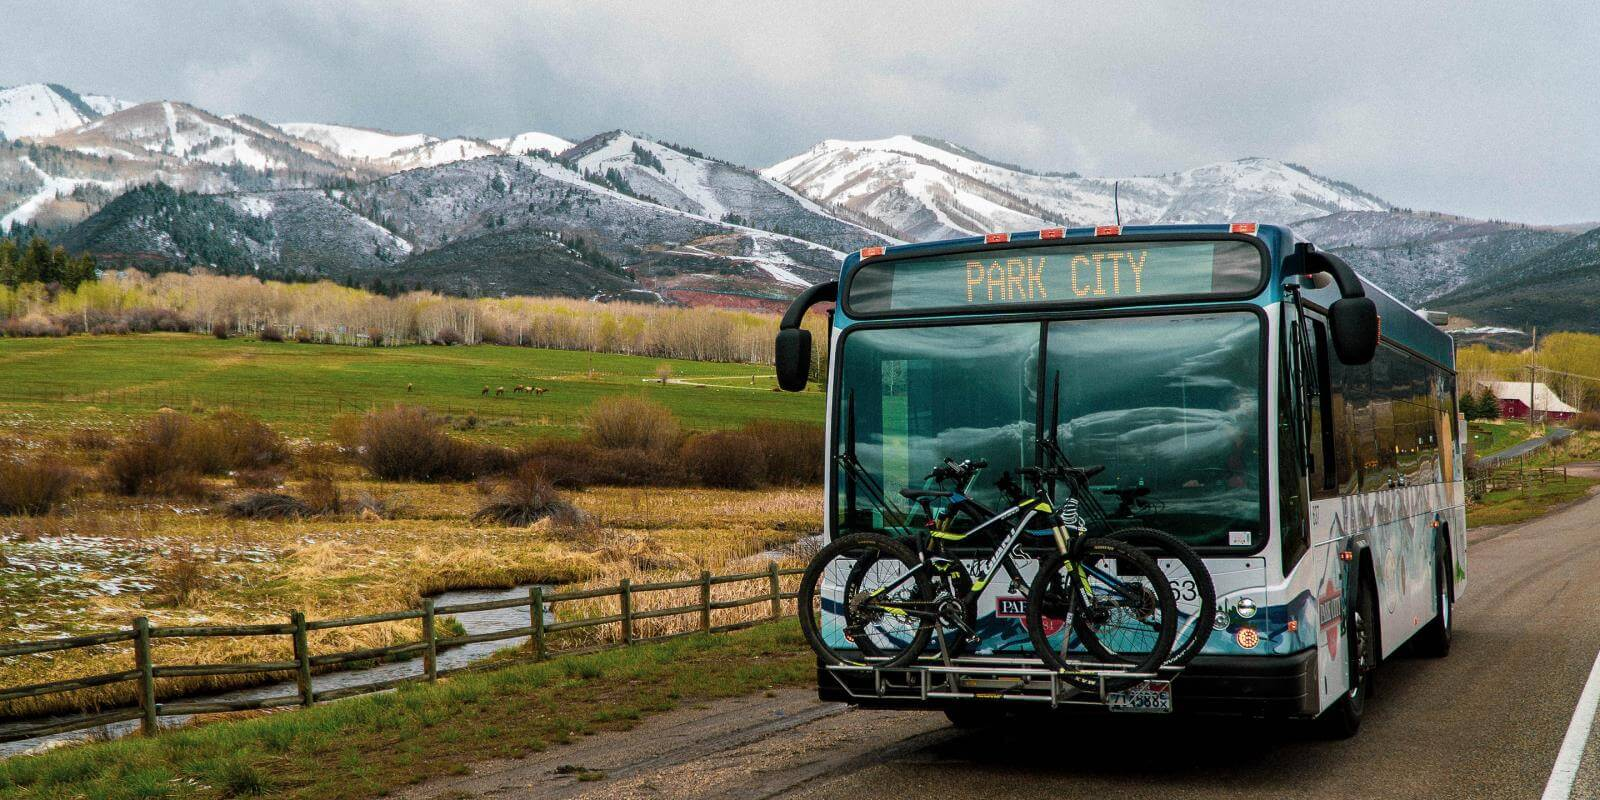 A Park City Transit Bus Carrying Two Mountain Bikes